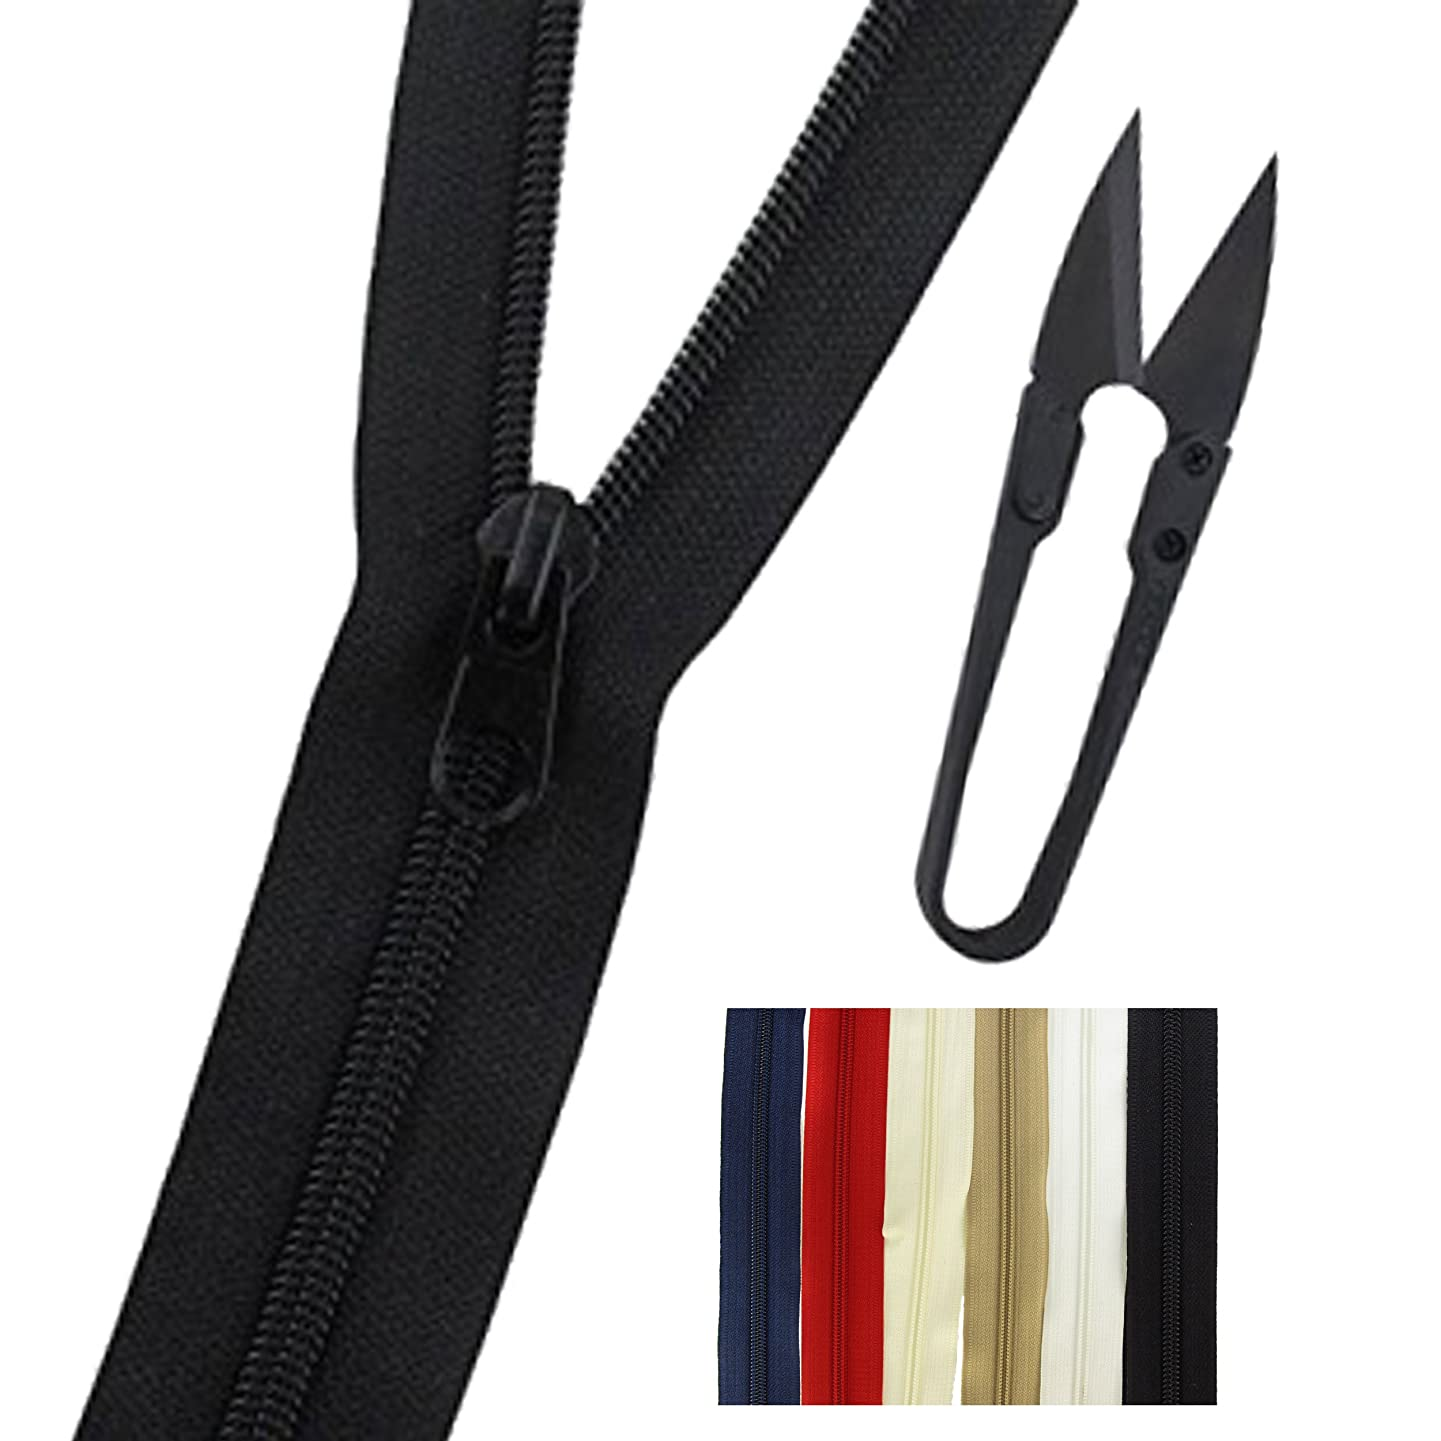 Bulk Zippers for Sewing, Arts and Crafts (Non-Separating) with 12 Metal Pulls + Free Snip - BambooMN - Black